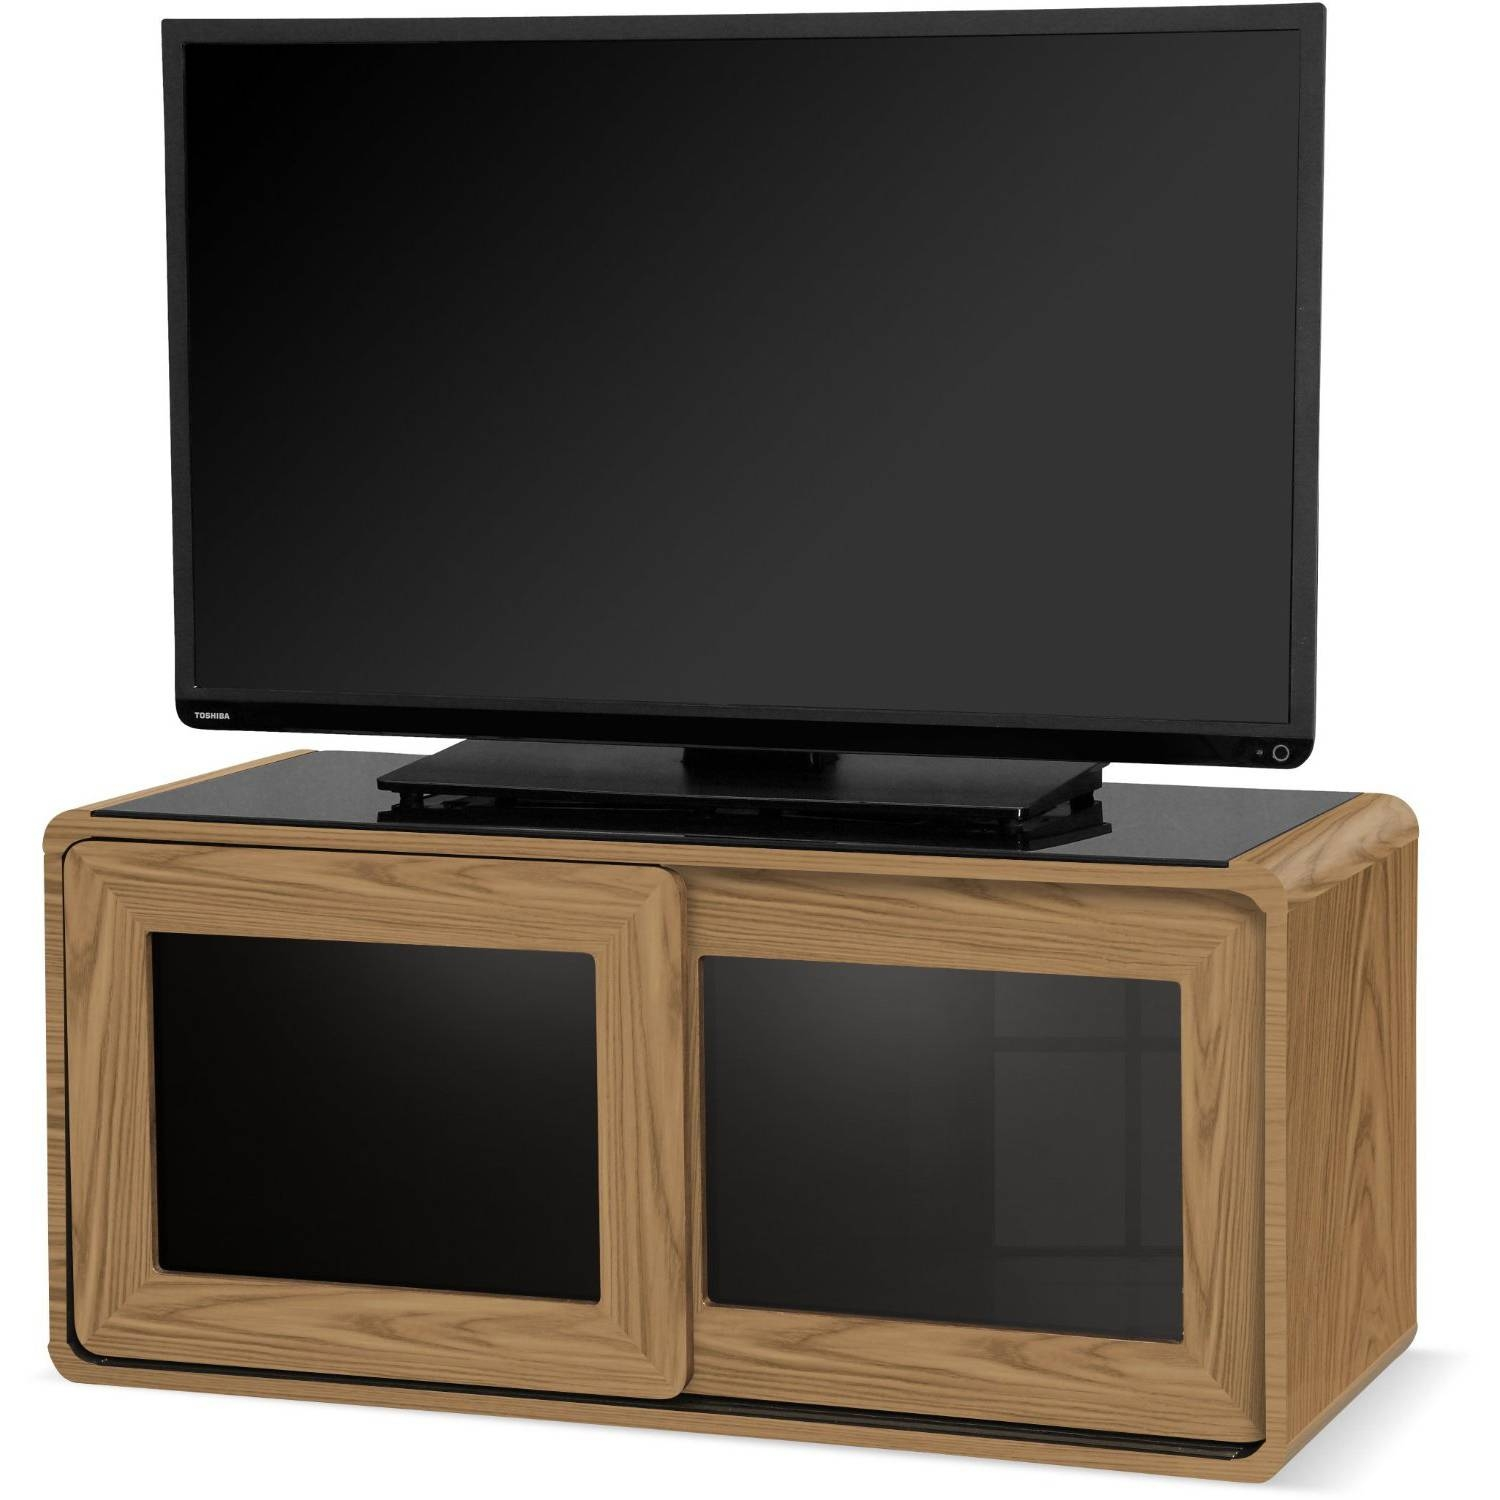 Centurion Supports Nora Oak With Beam-Thru Glass Sliding Door Tv within Beam Thru Tv Cabinet (Image 9 of 15)